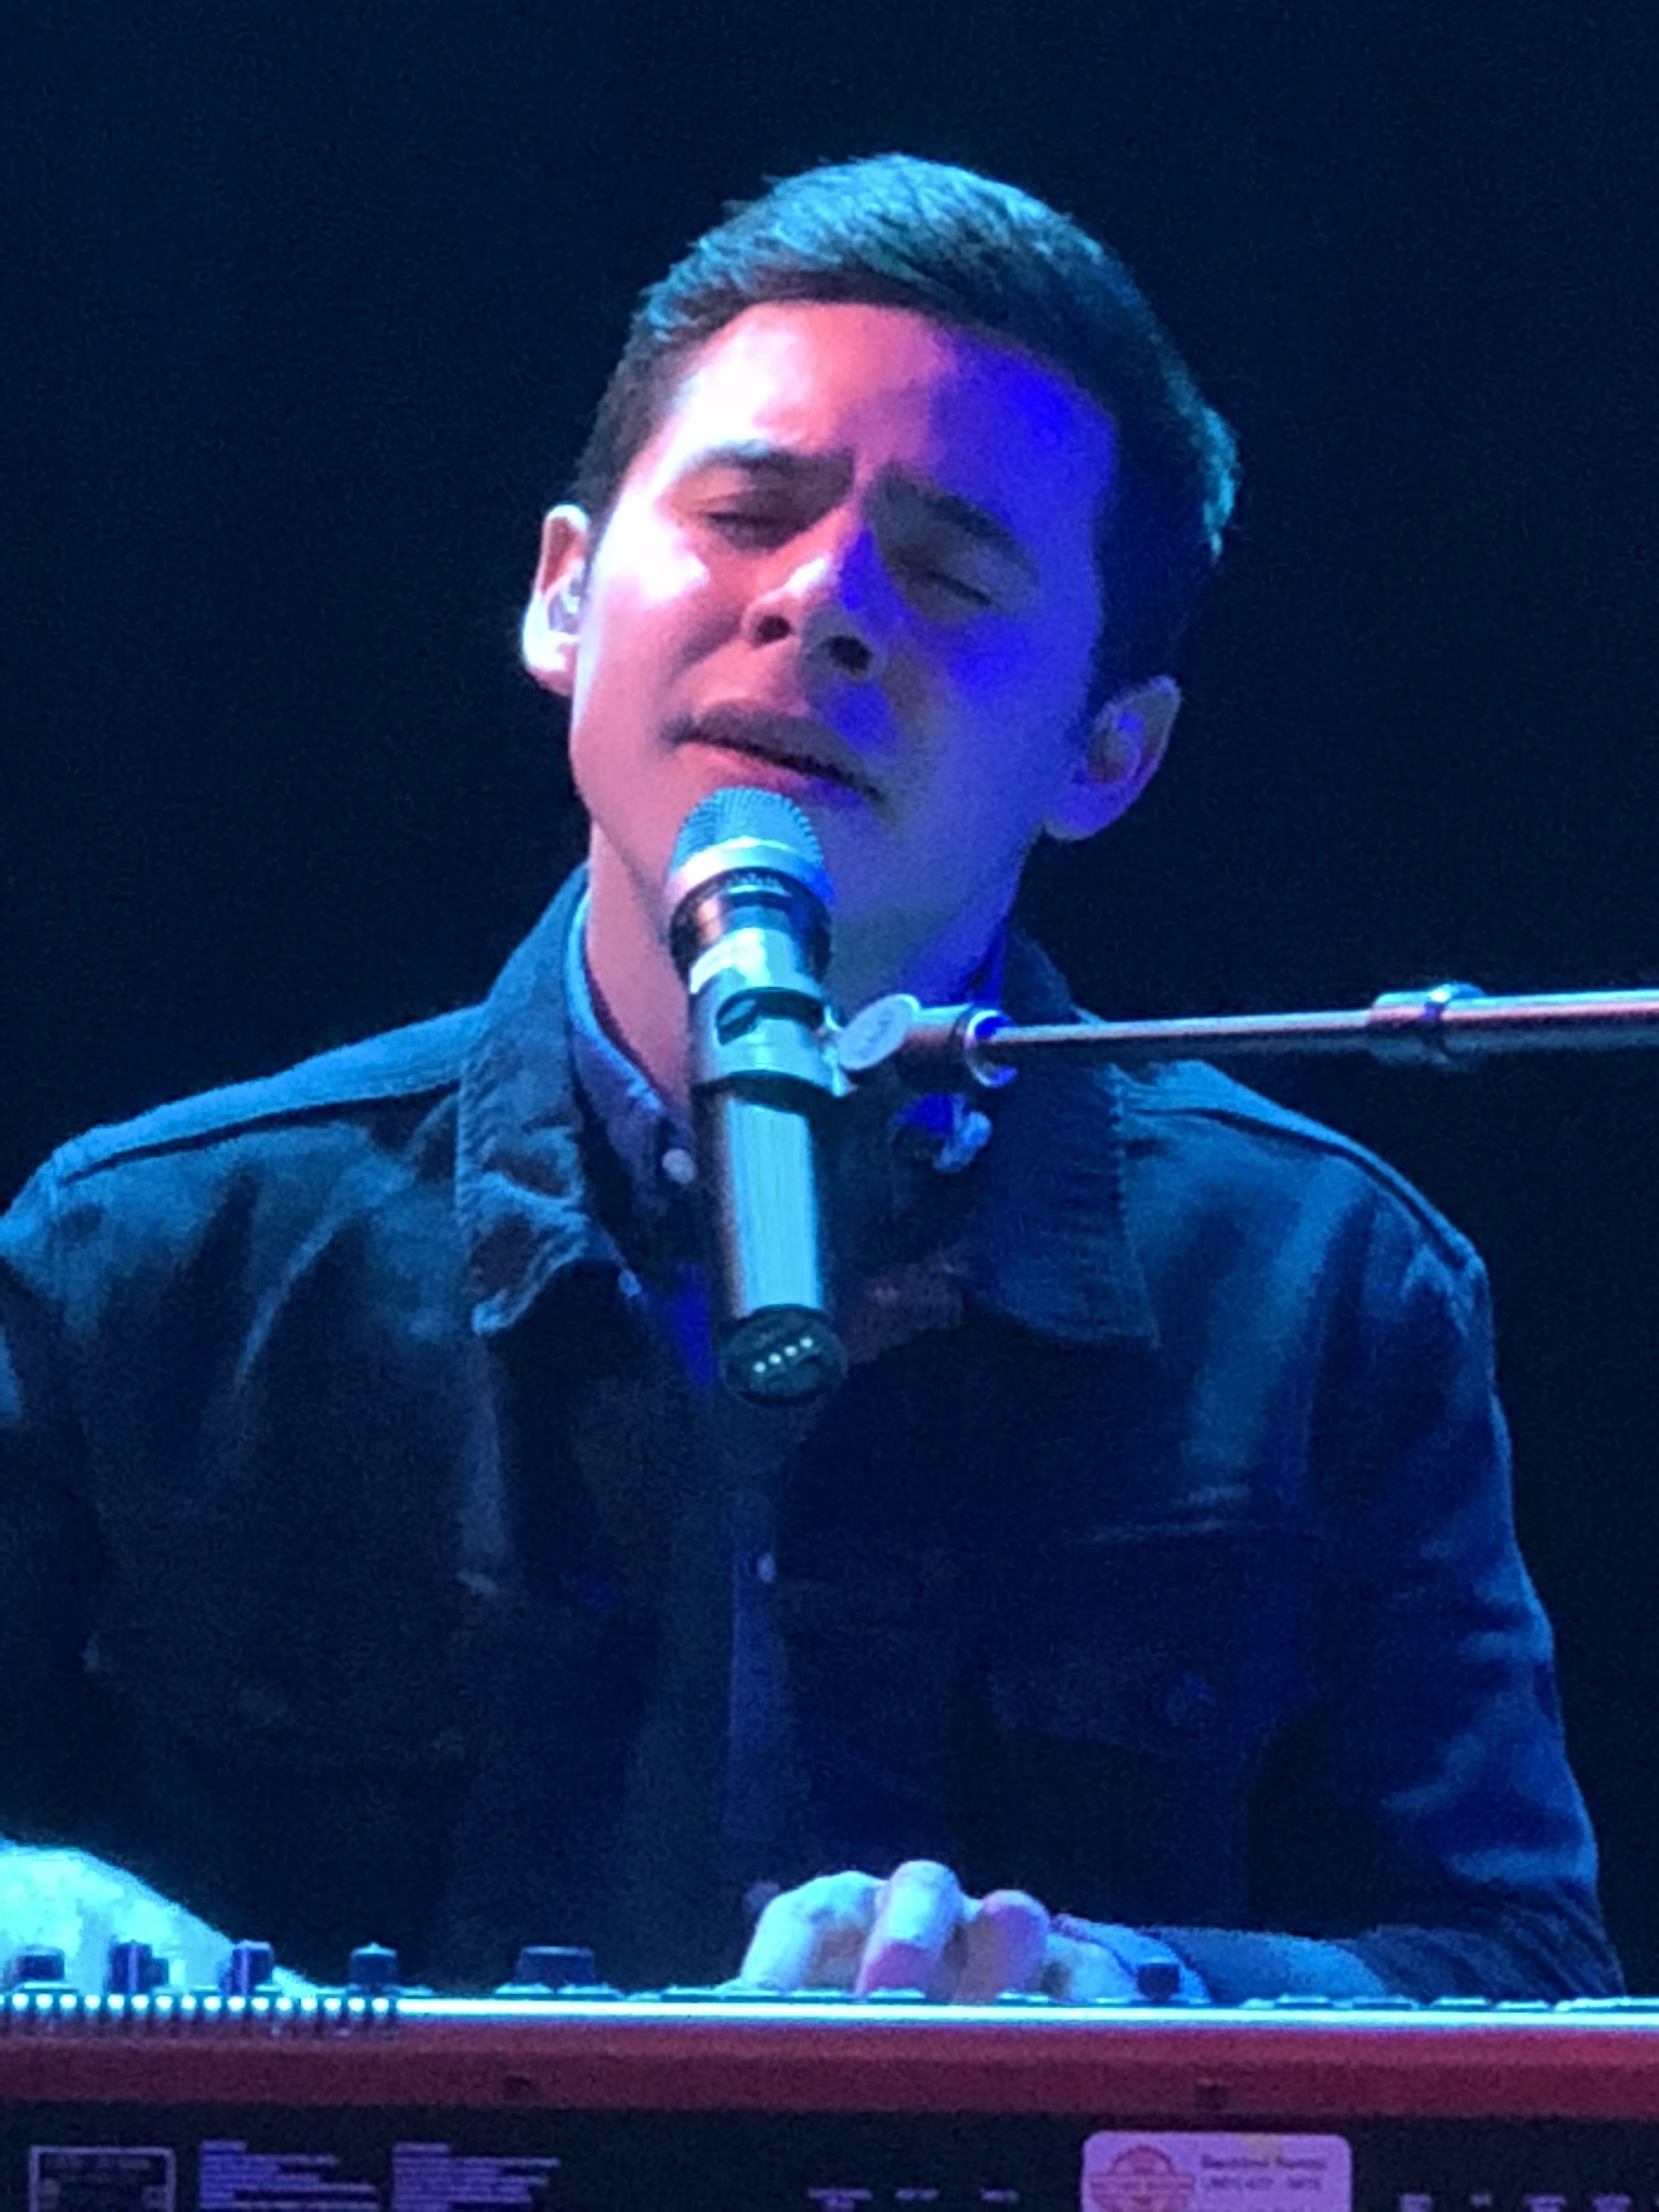 Image result for david archuleta in concert